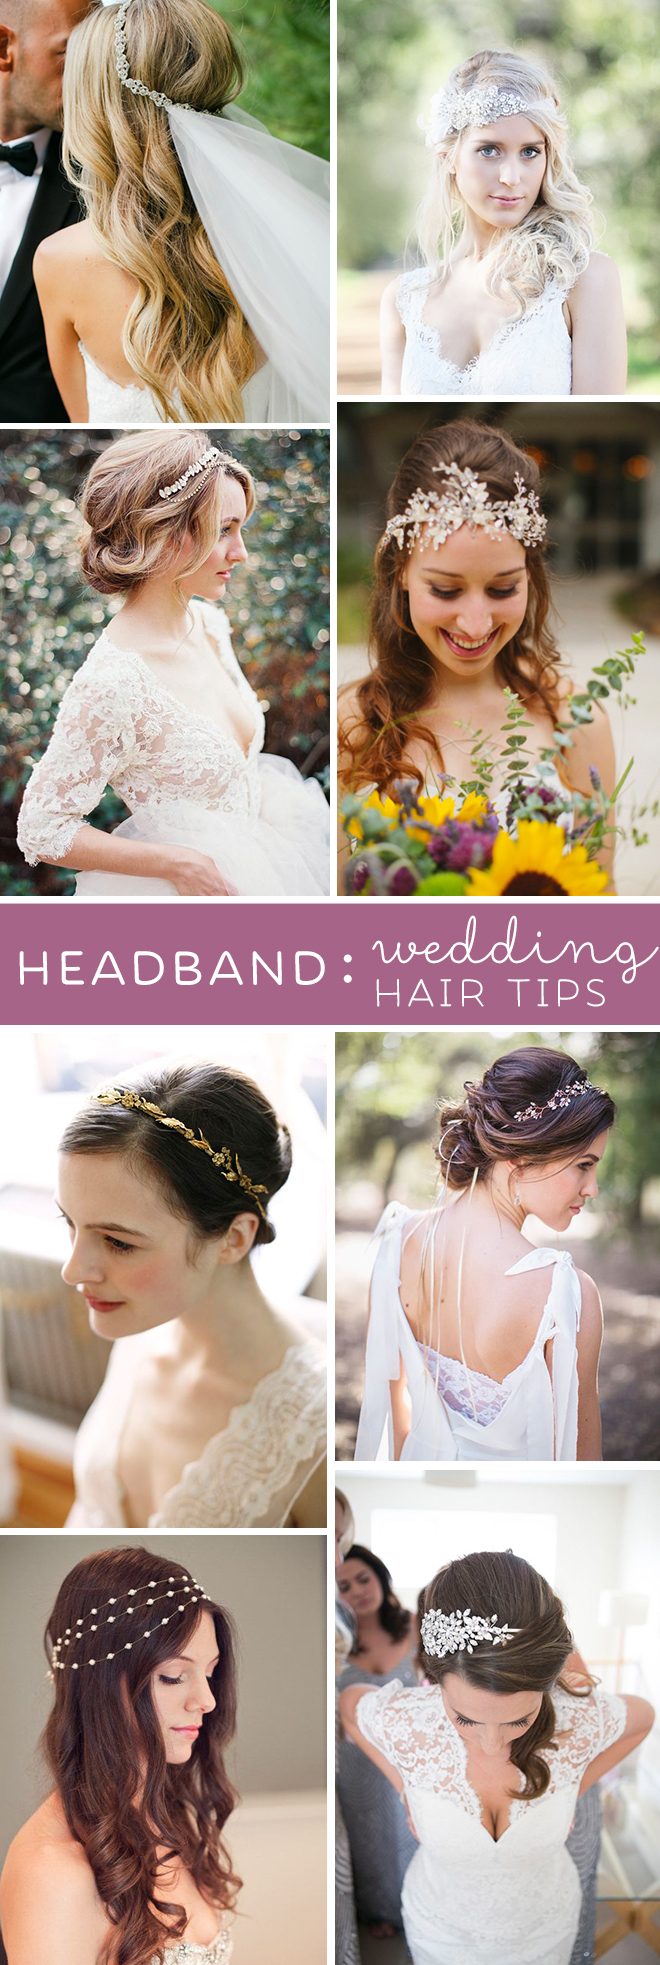 Awesome tips from a wedding hair professional about wearing a headband or hair piece for your wedding day style!